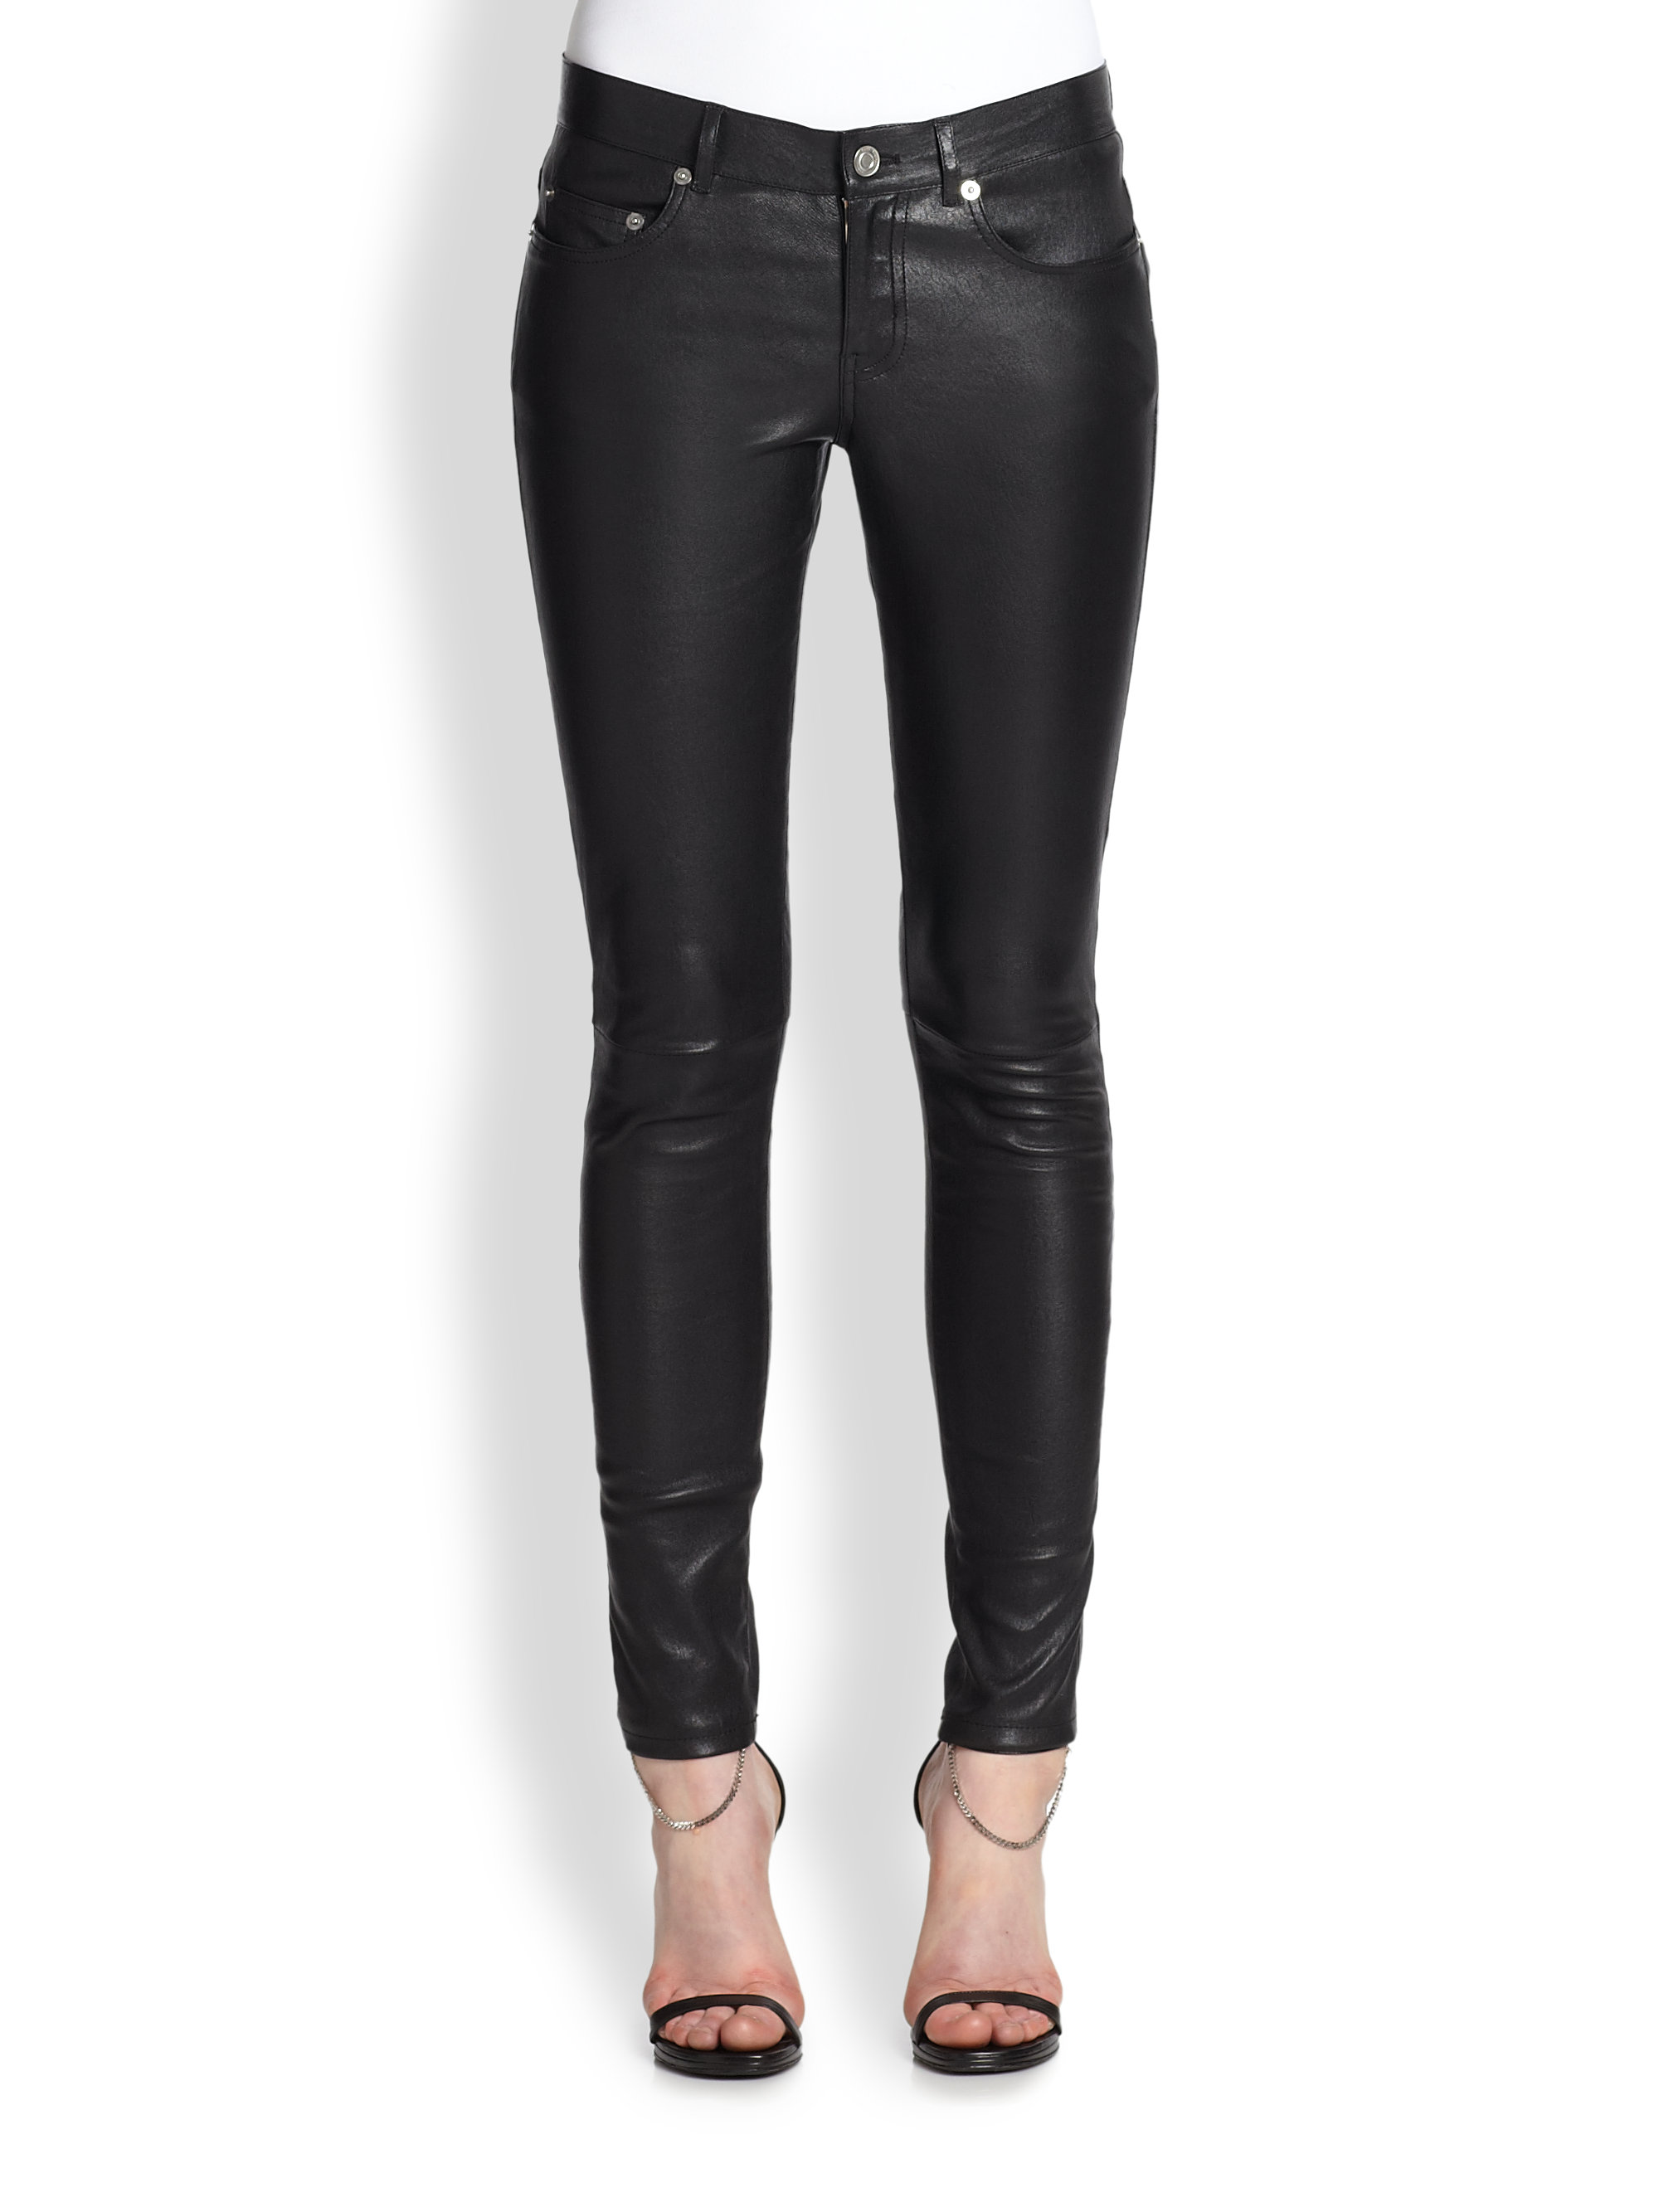 Bluelans Women Sexy Faux Leather Skinny Glossy Pants High Waisted Long Leggings Trousers. Sold by Bluelans. $ $ FAIRCHILD $99 Womens Black Faux Leather Skinny Casual Pants L B+B. Sold by BOBBI + BRICKA. $ $ ALFANI $79 Womens New Black Faux Leather Skinny Casual Pants 4 B+B.